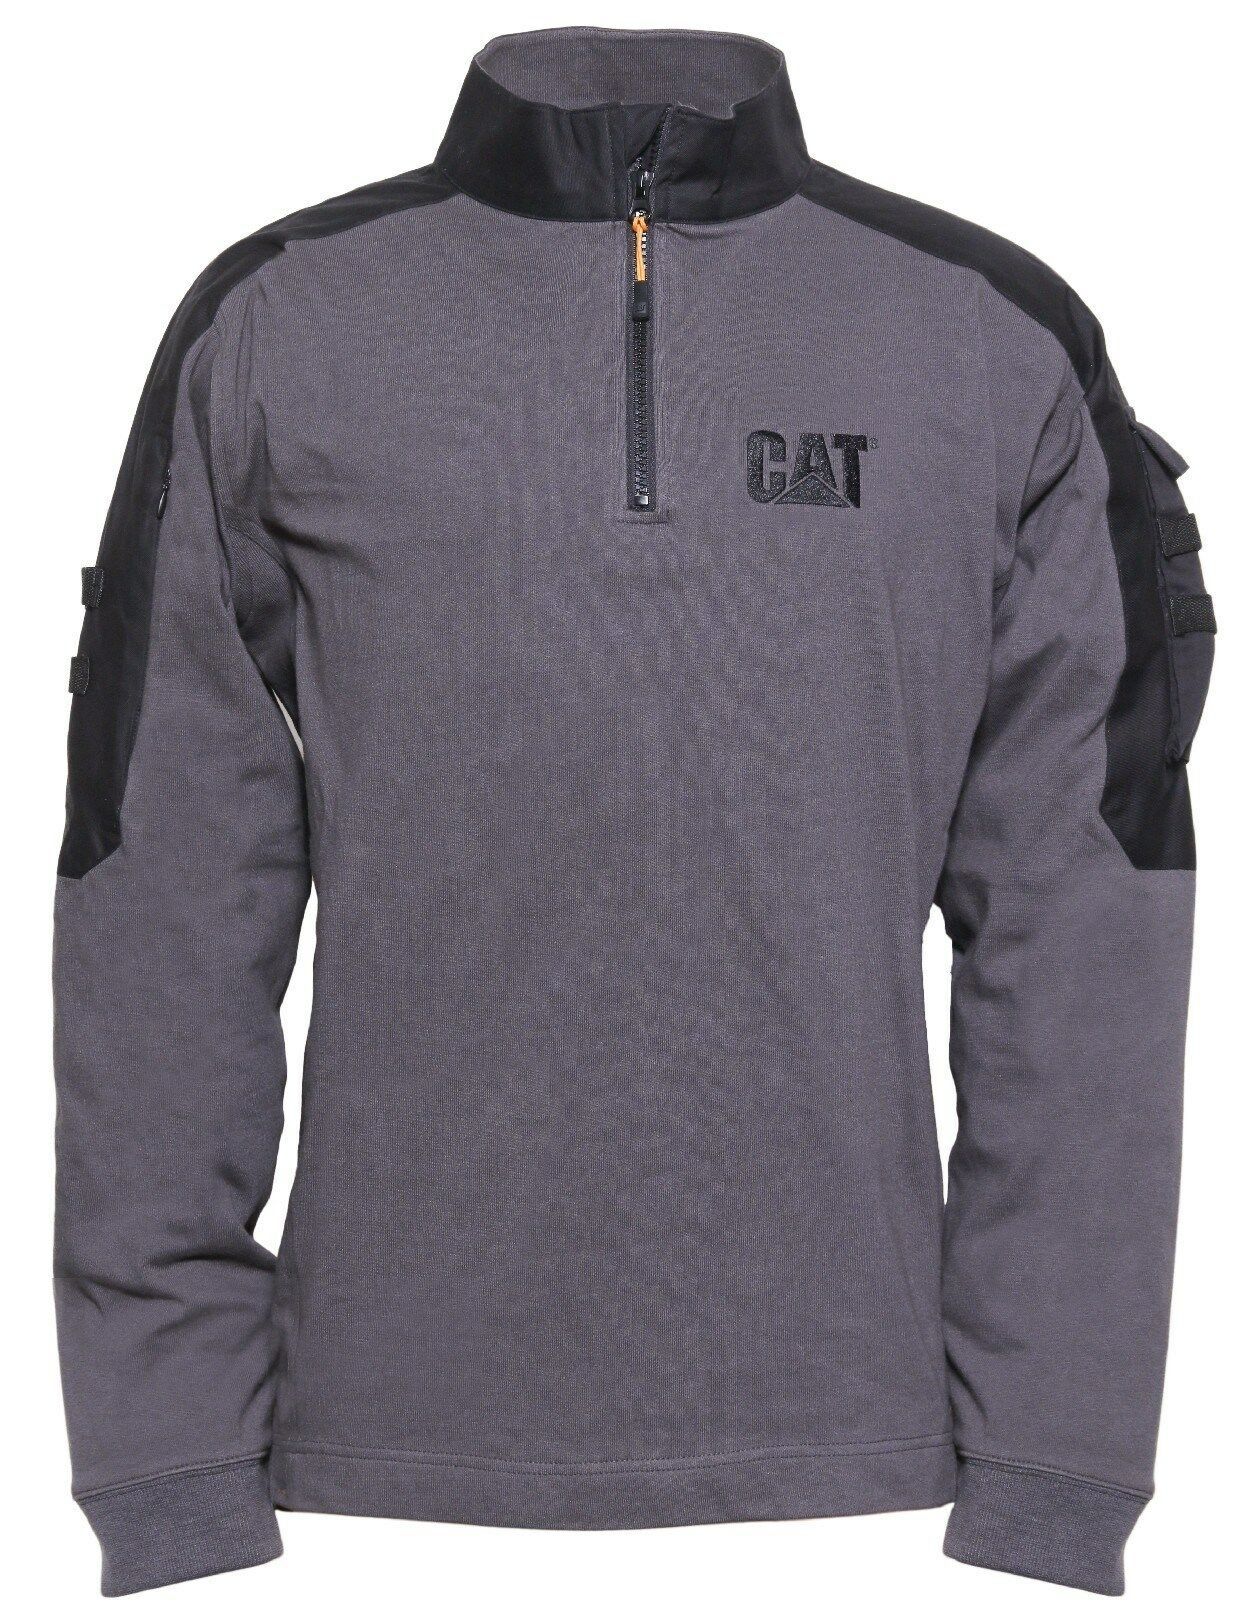 CAT Caterpillar Tactical Work Grau 1/4 Zip Workwear Sweat Shirt  Herren